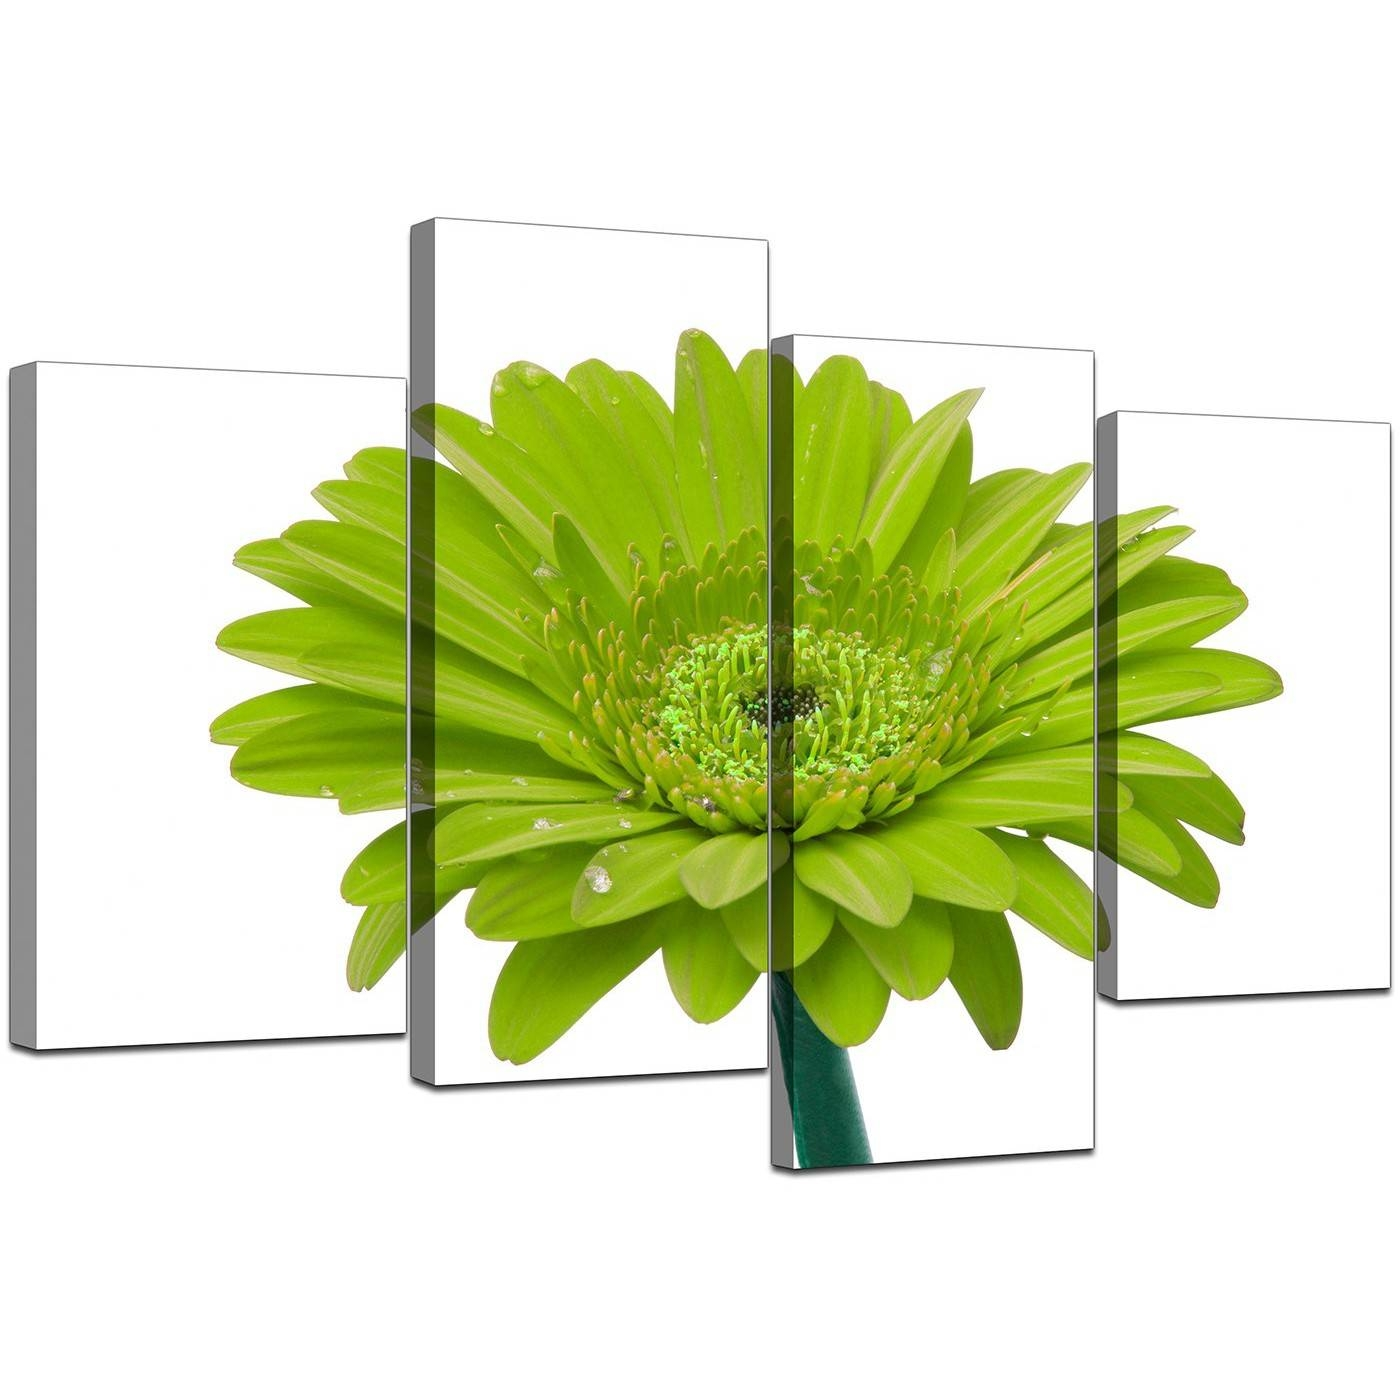 Canvas Wall Art Of Flower In Lime Green For Your Living Room Regarding 2018 Green Canvas Wall Art (View 12 of 20)